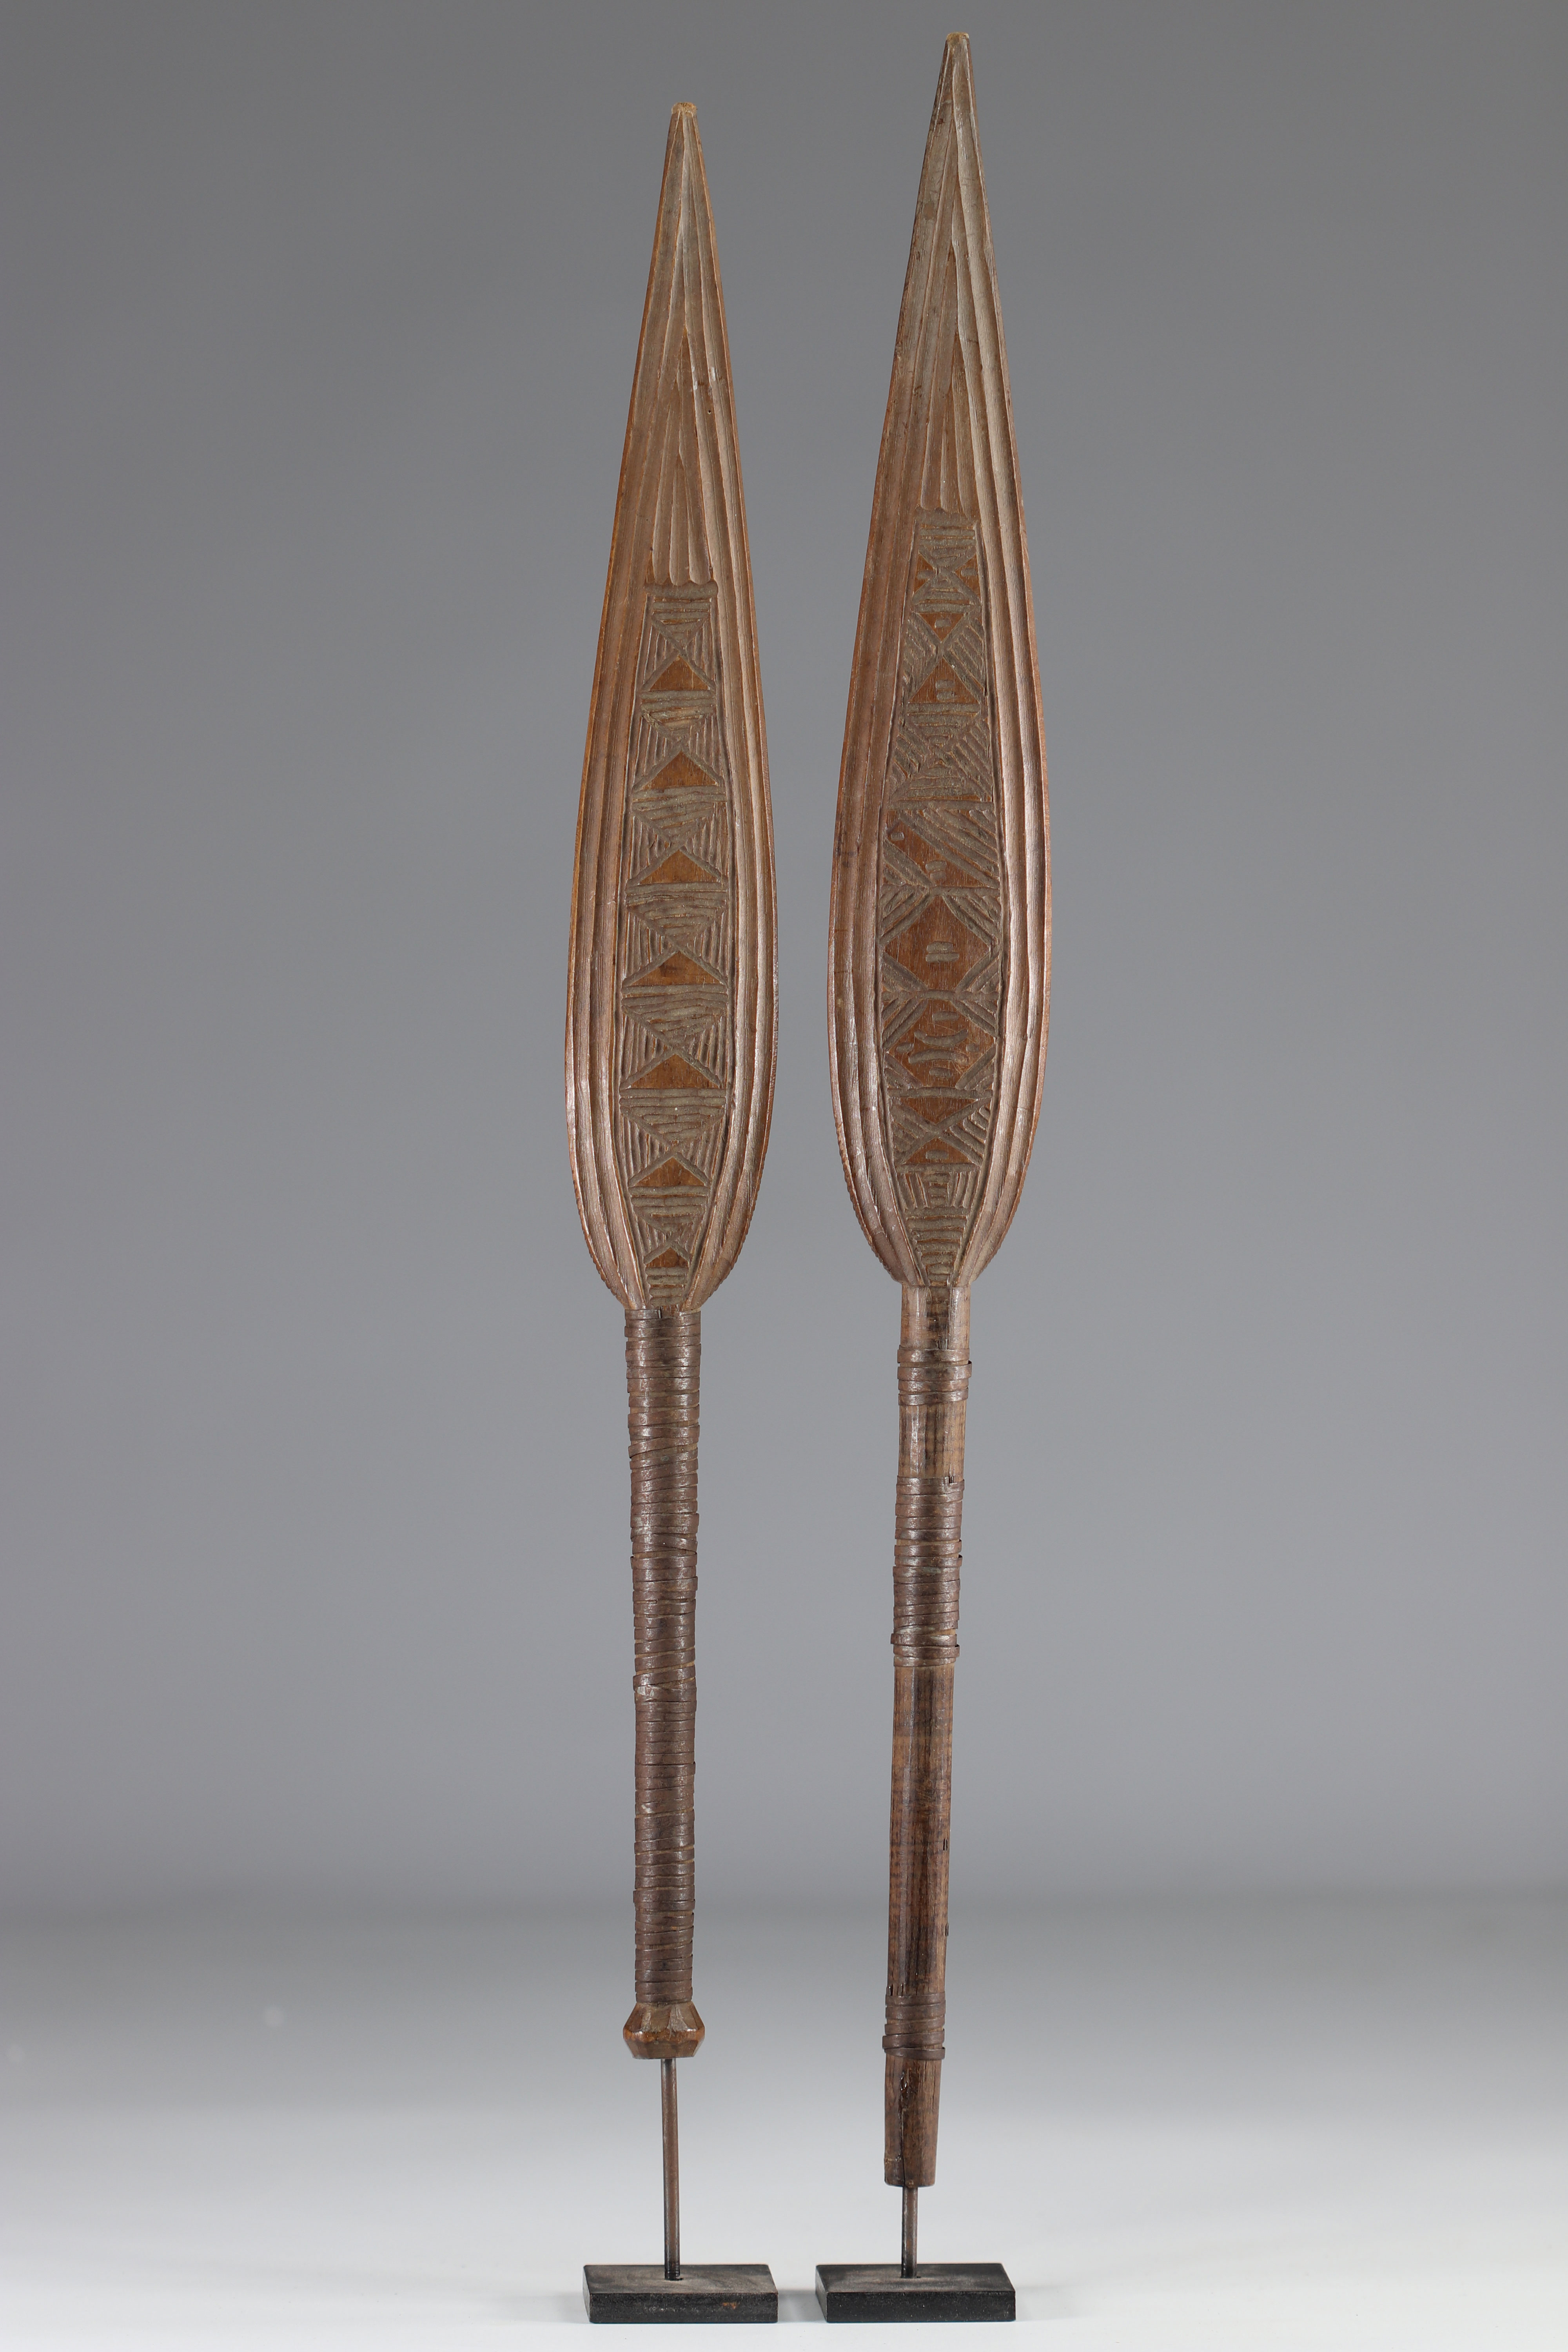 Pair of dance paddles - early 20th century - DRC - Africa